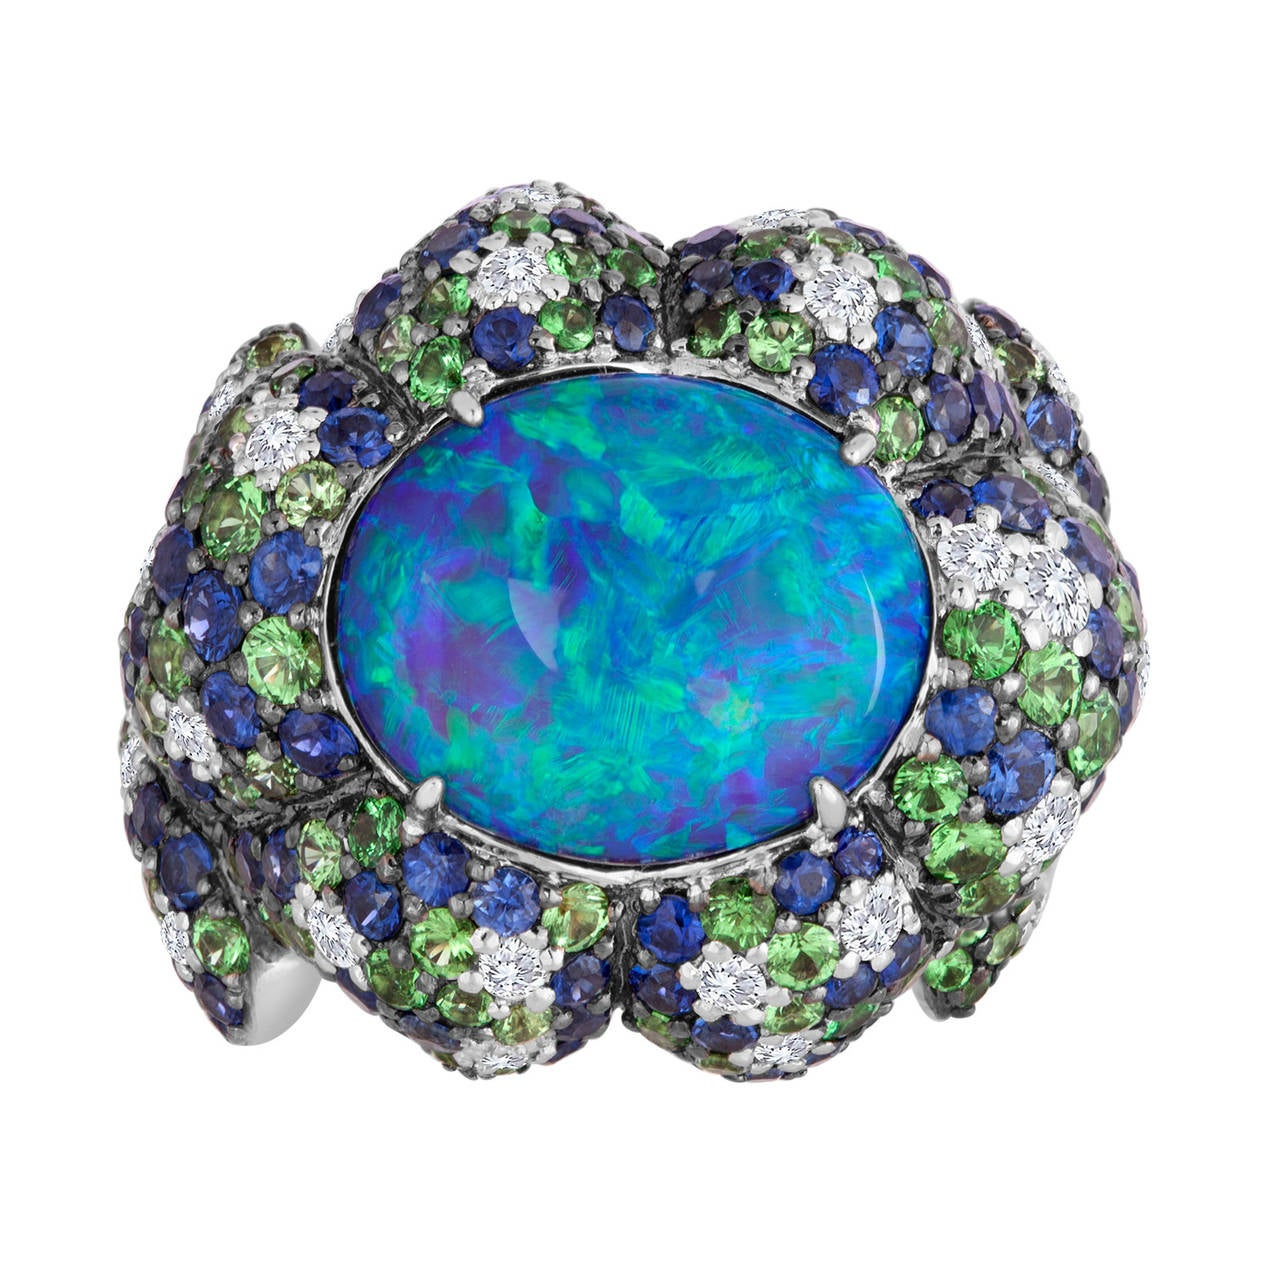 Australian Black Opal Ring For Sale At 1stdibs